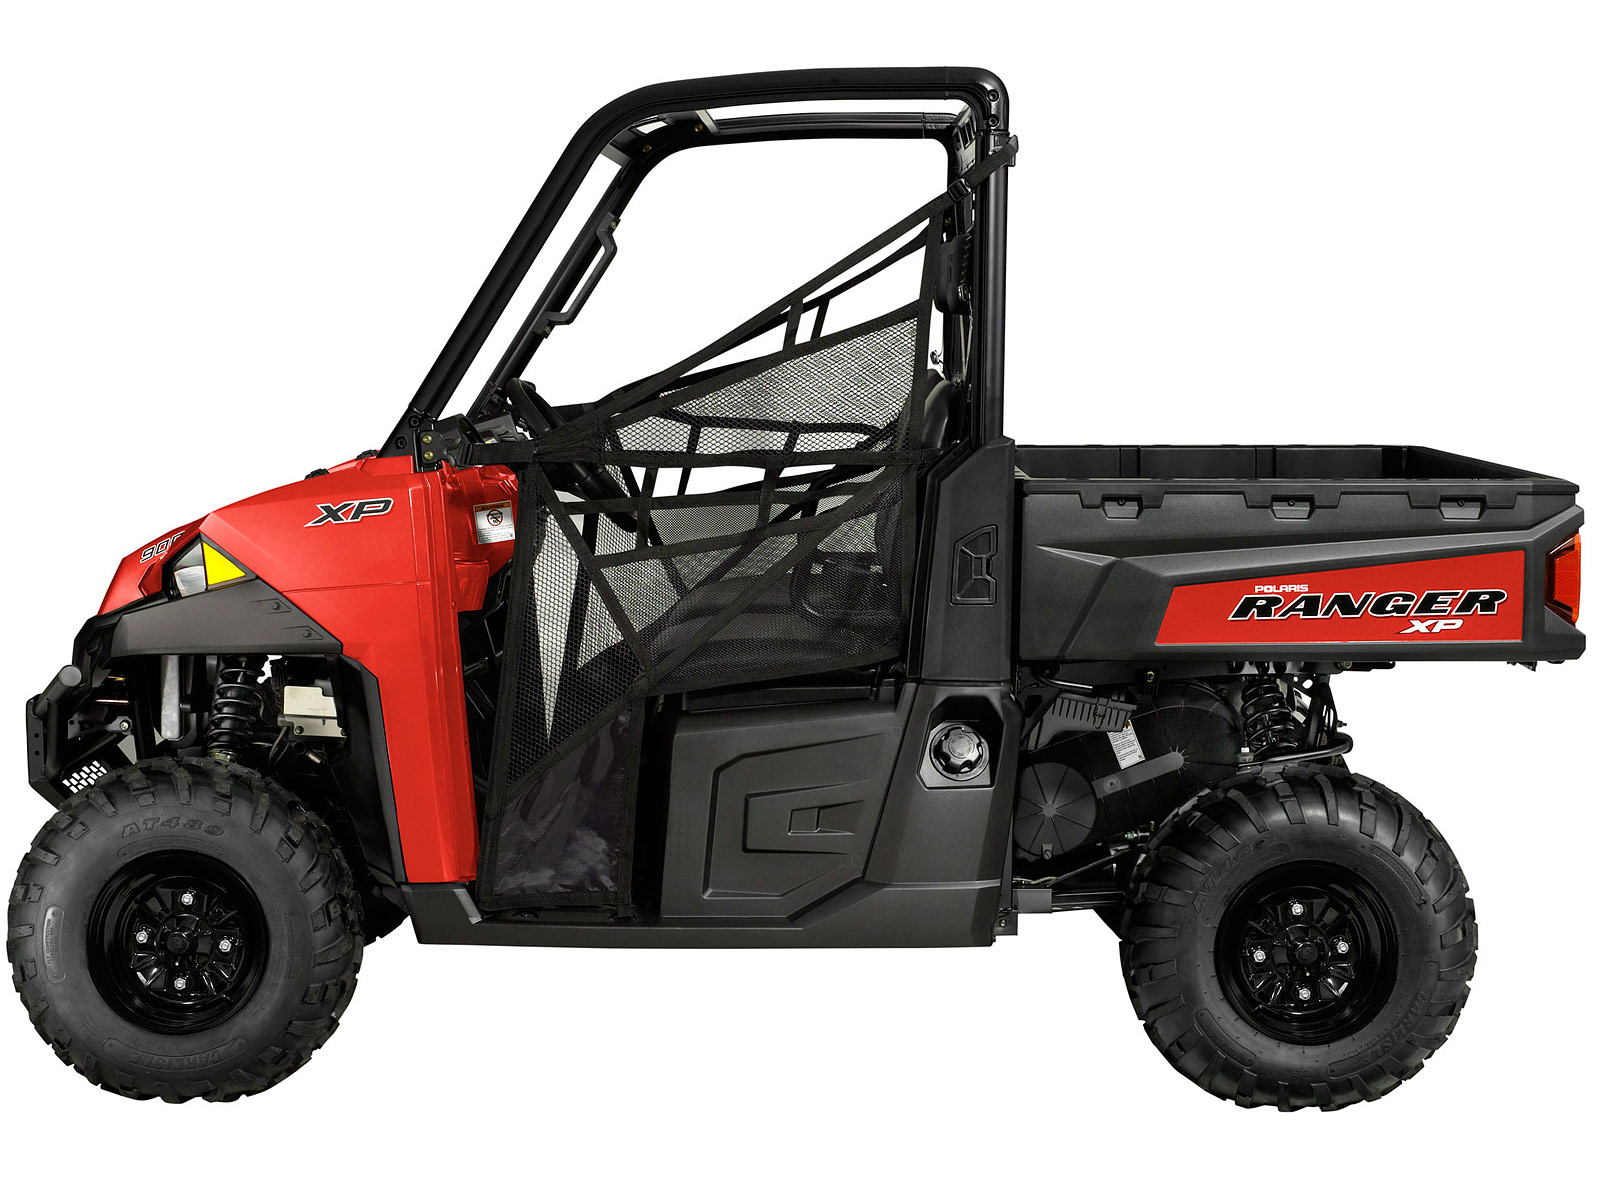 small resolution of  2013 polaris ranger xp900 atv pictures 2